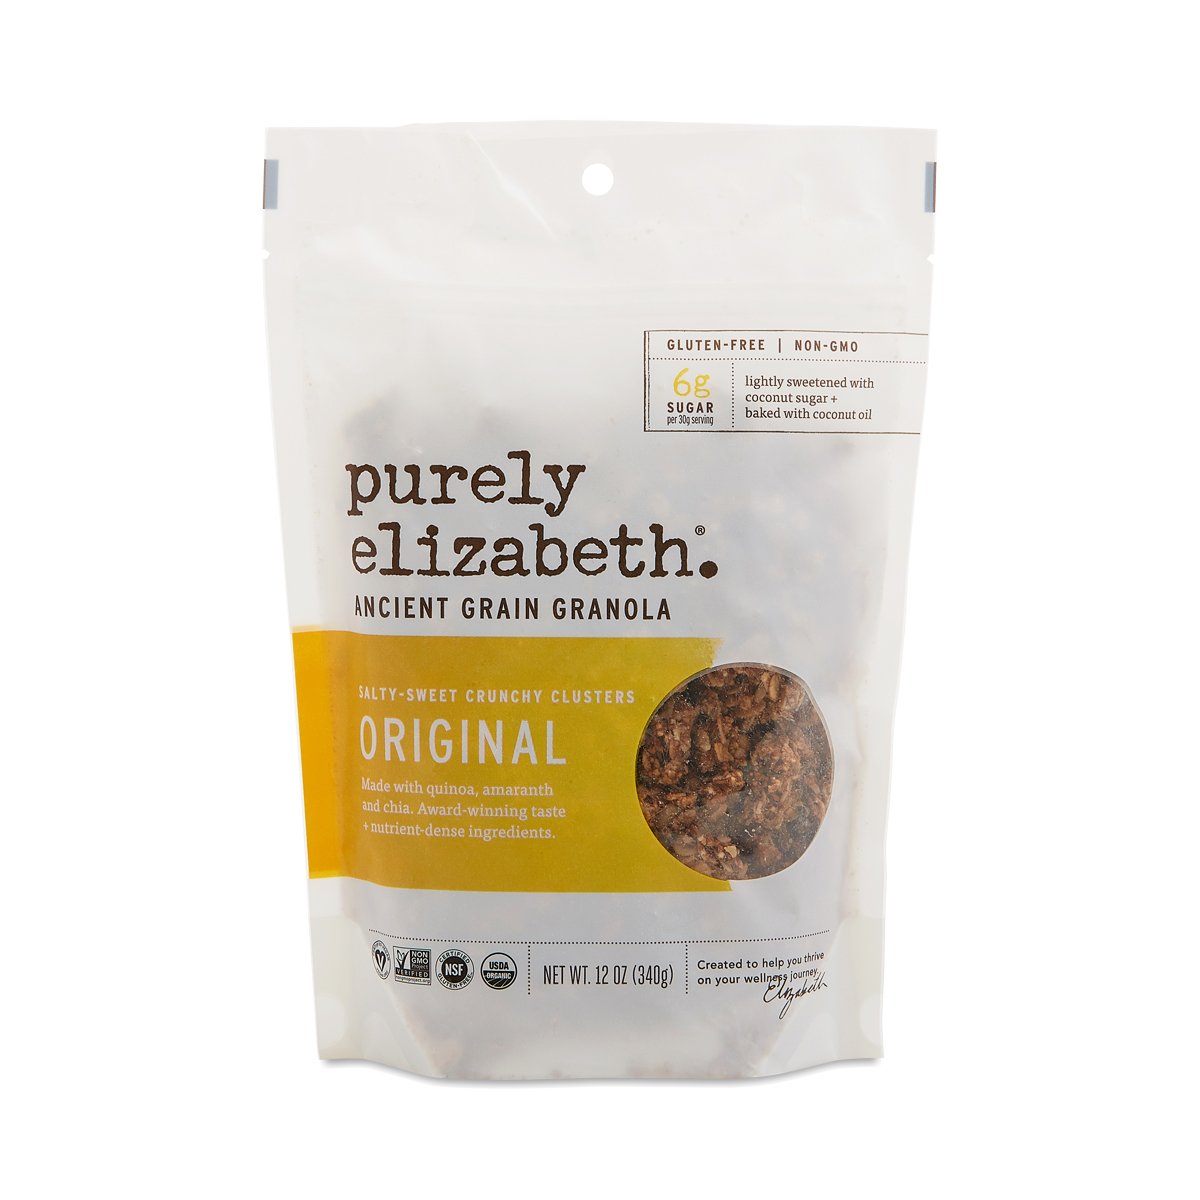 Purely Elizabeth Ancient Grain Granola Cereal, Original 12 oz bag